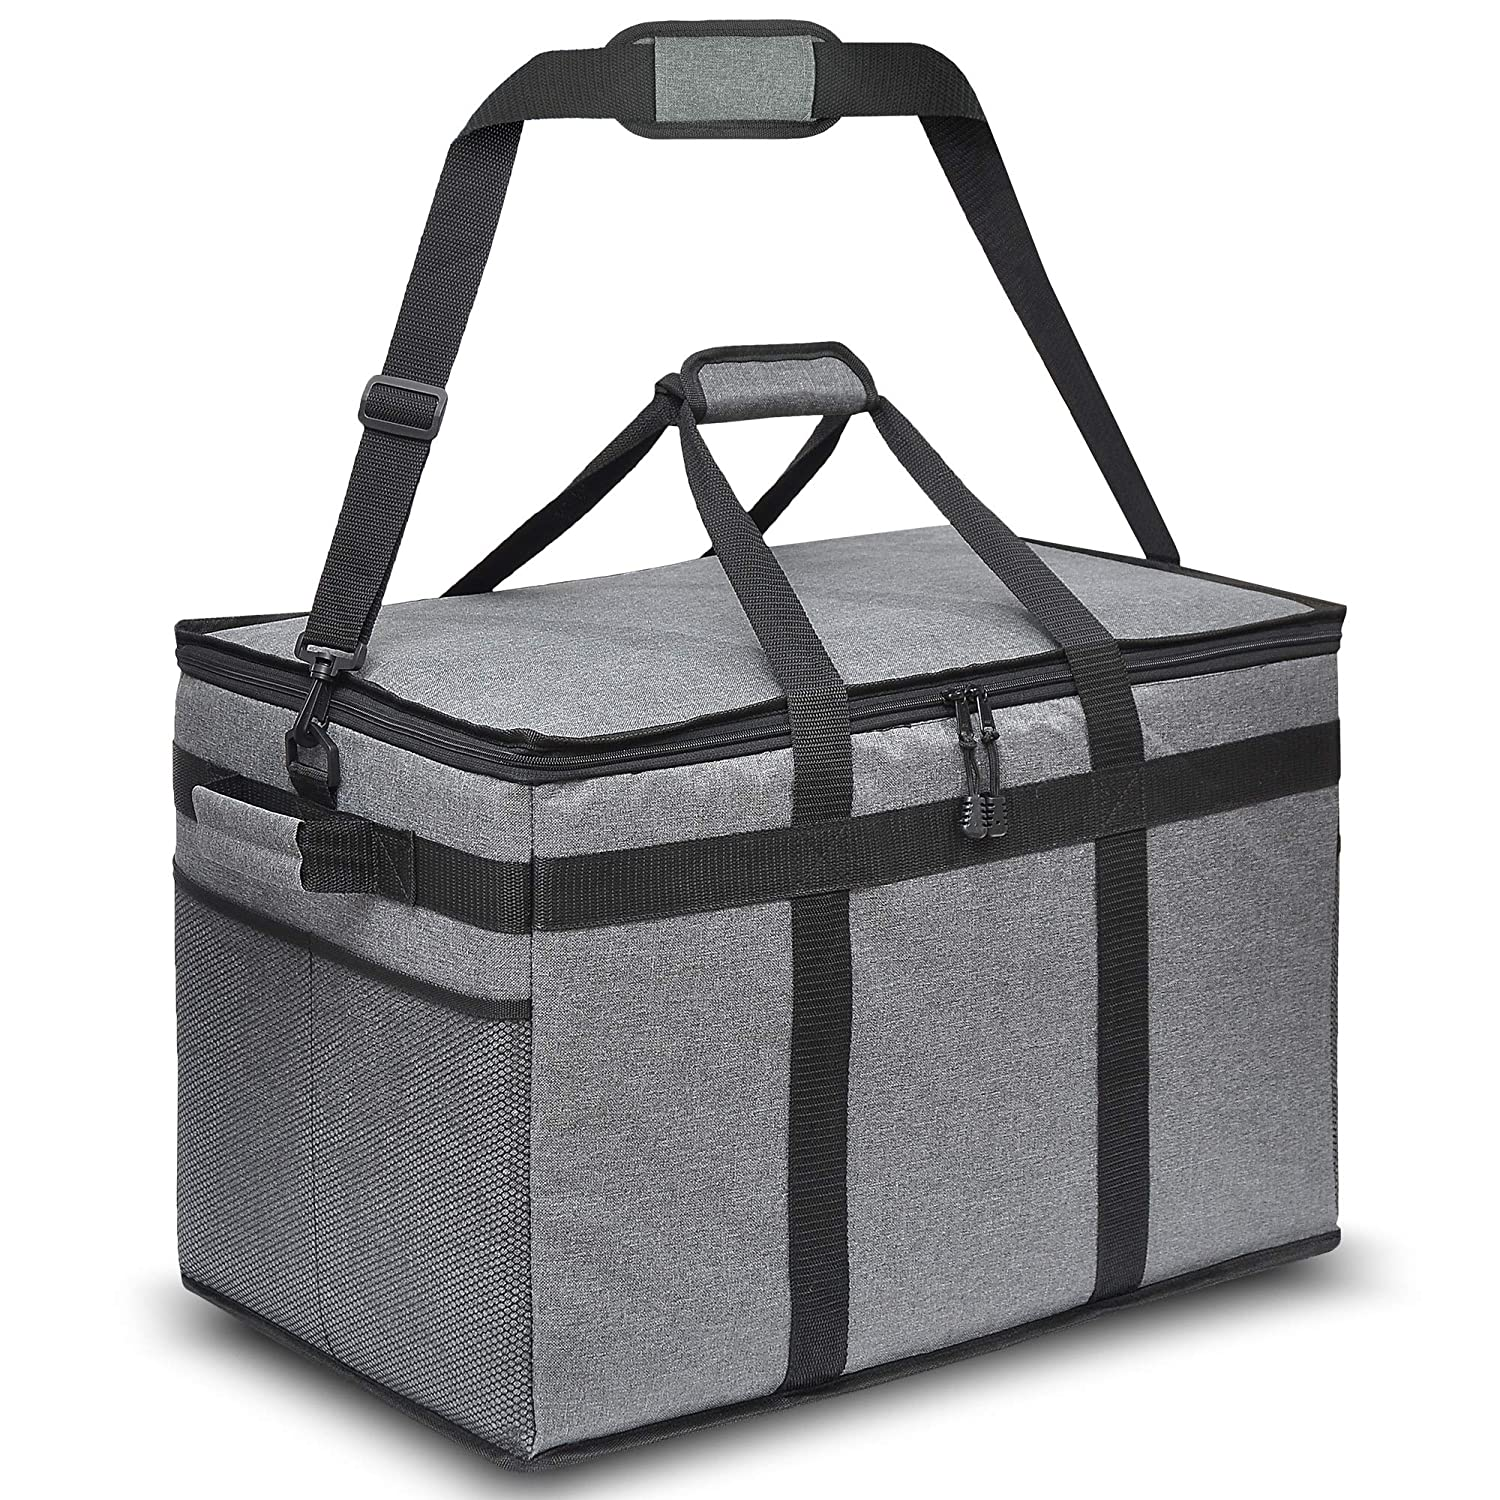 The HOT Box Insulated Food Delivery Bag - Premium Quality Bag for Hot and Cold Food for Uber Eats DoorDash Instacart Postmates Groceries Restaurants - XXL Sized Excellent for Catering - 23